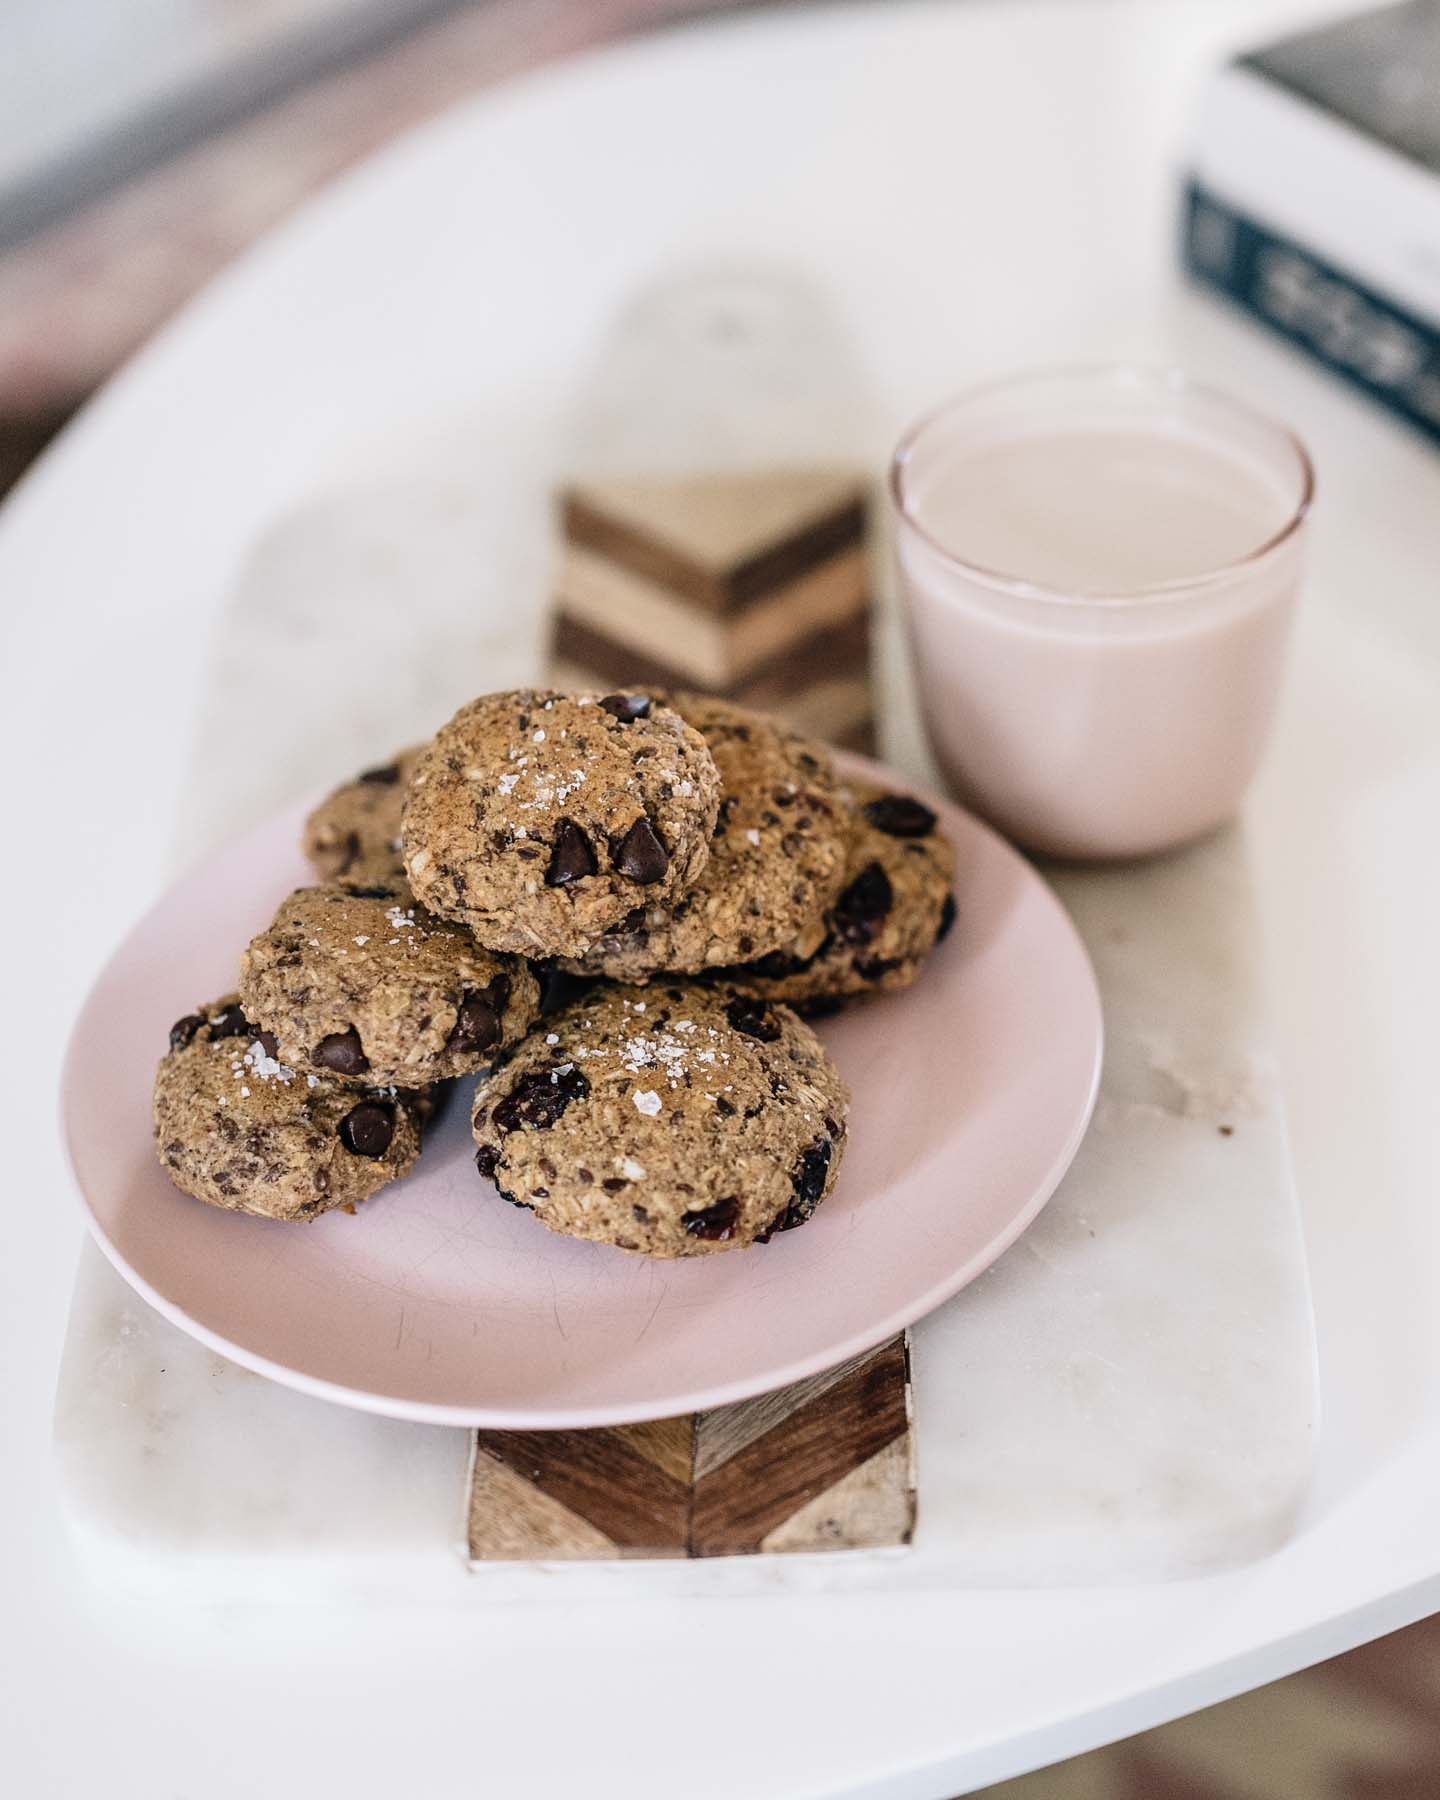 Jess Ann Kirby bakes vegan breakfast cookies for a healthy snack